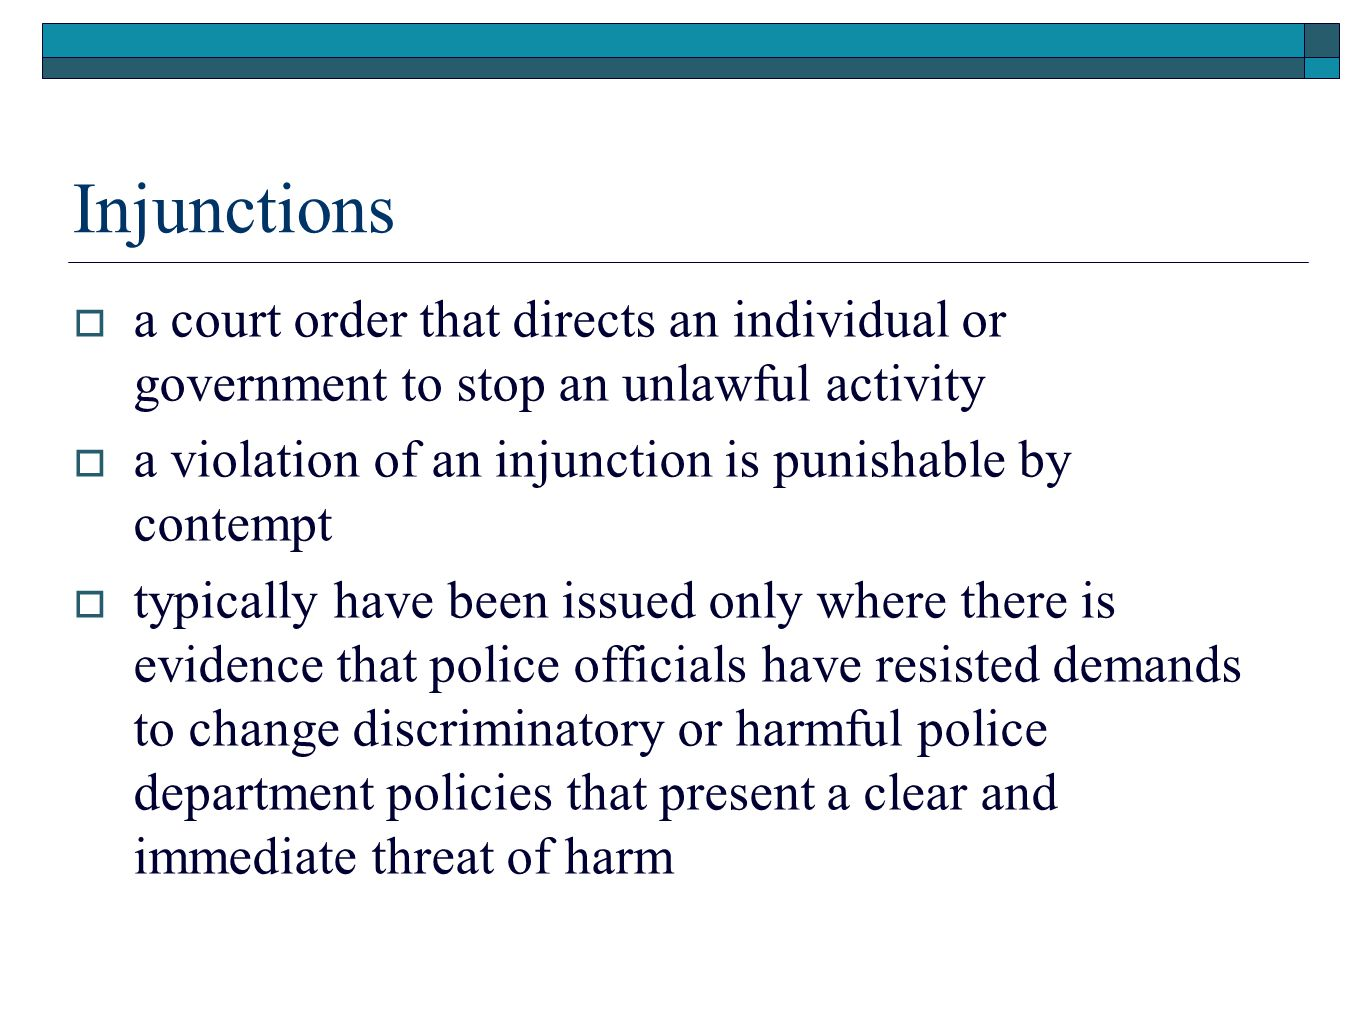 Injunctions a court order that directs an individual or government to stop an unlawful activity.